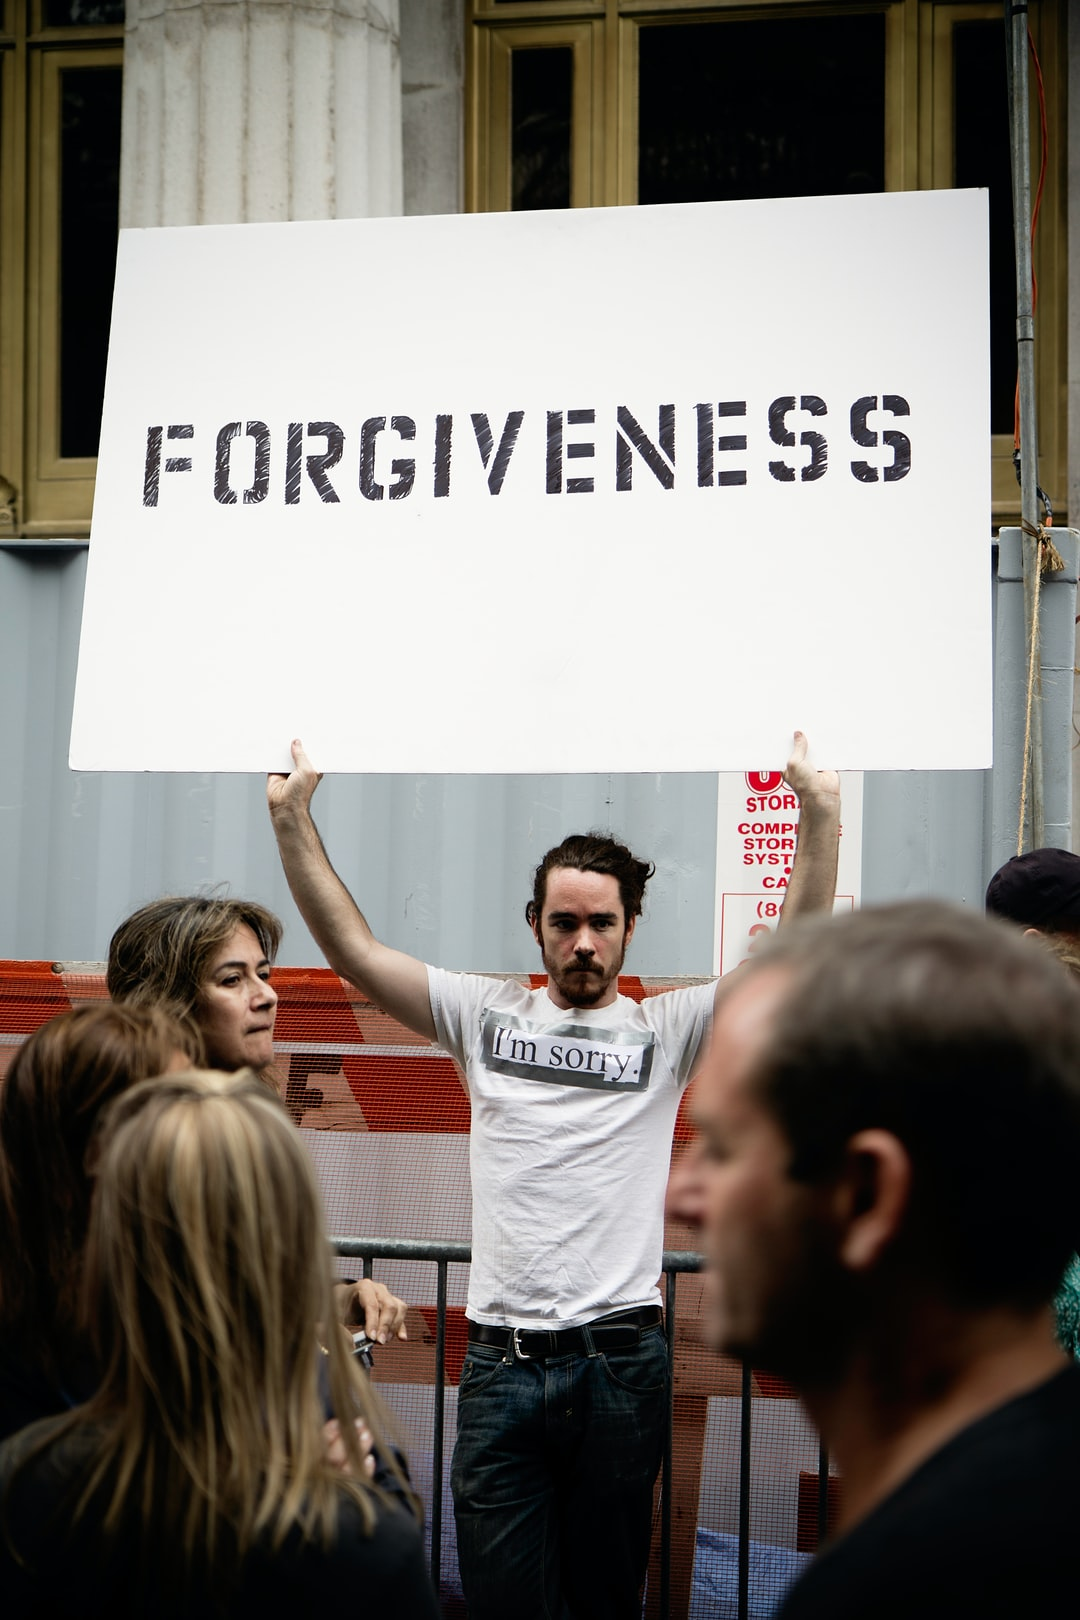 Forgiveness in Recovery: Learning to Move Forward